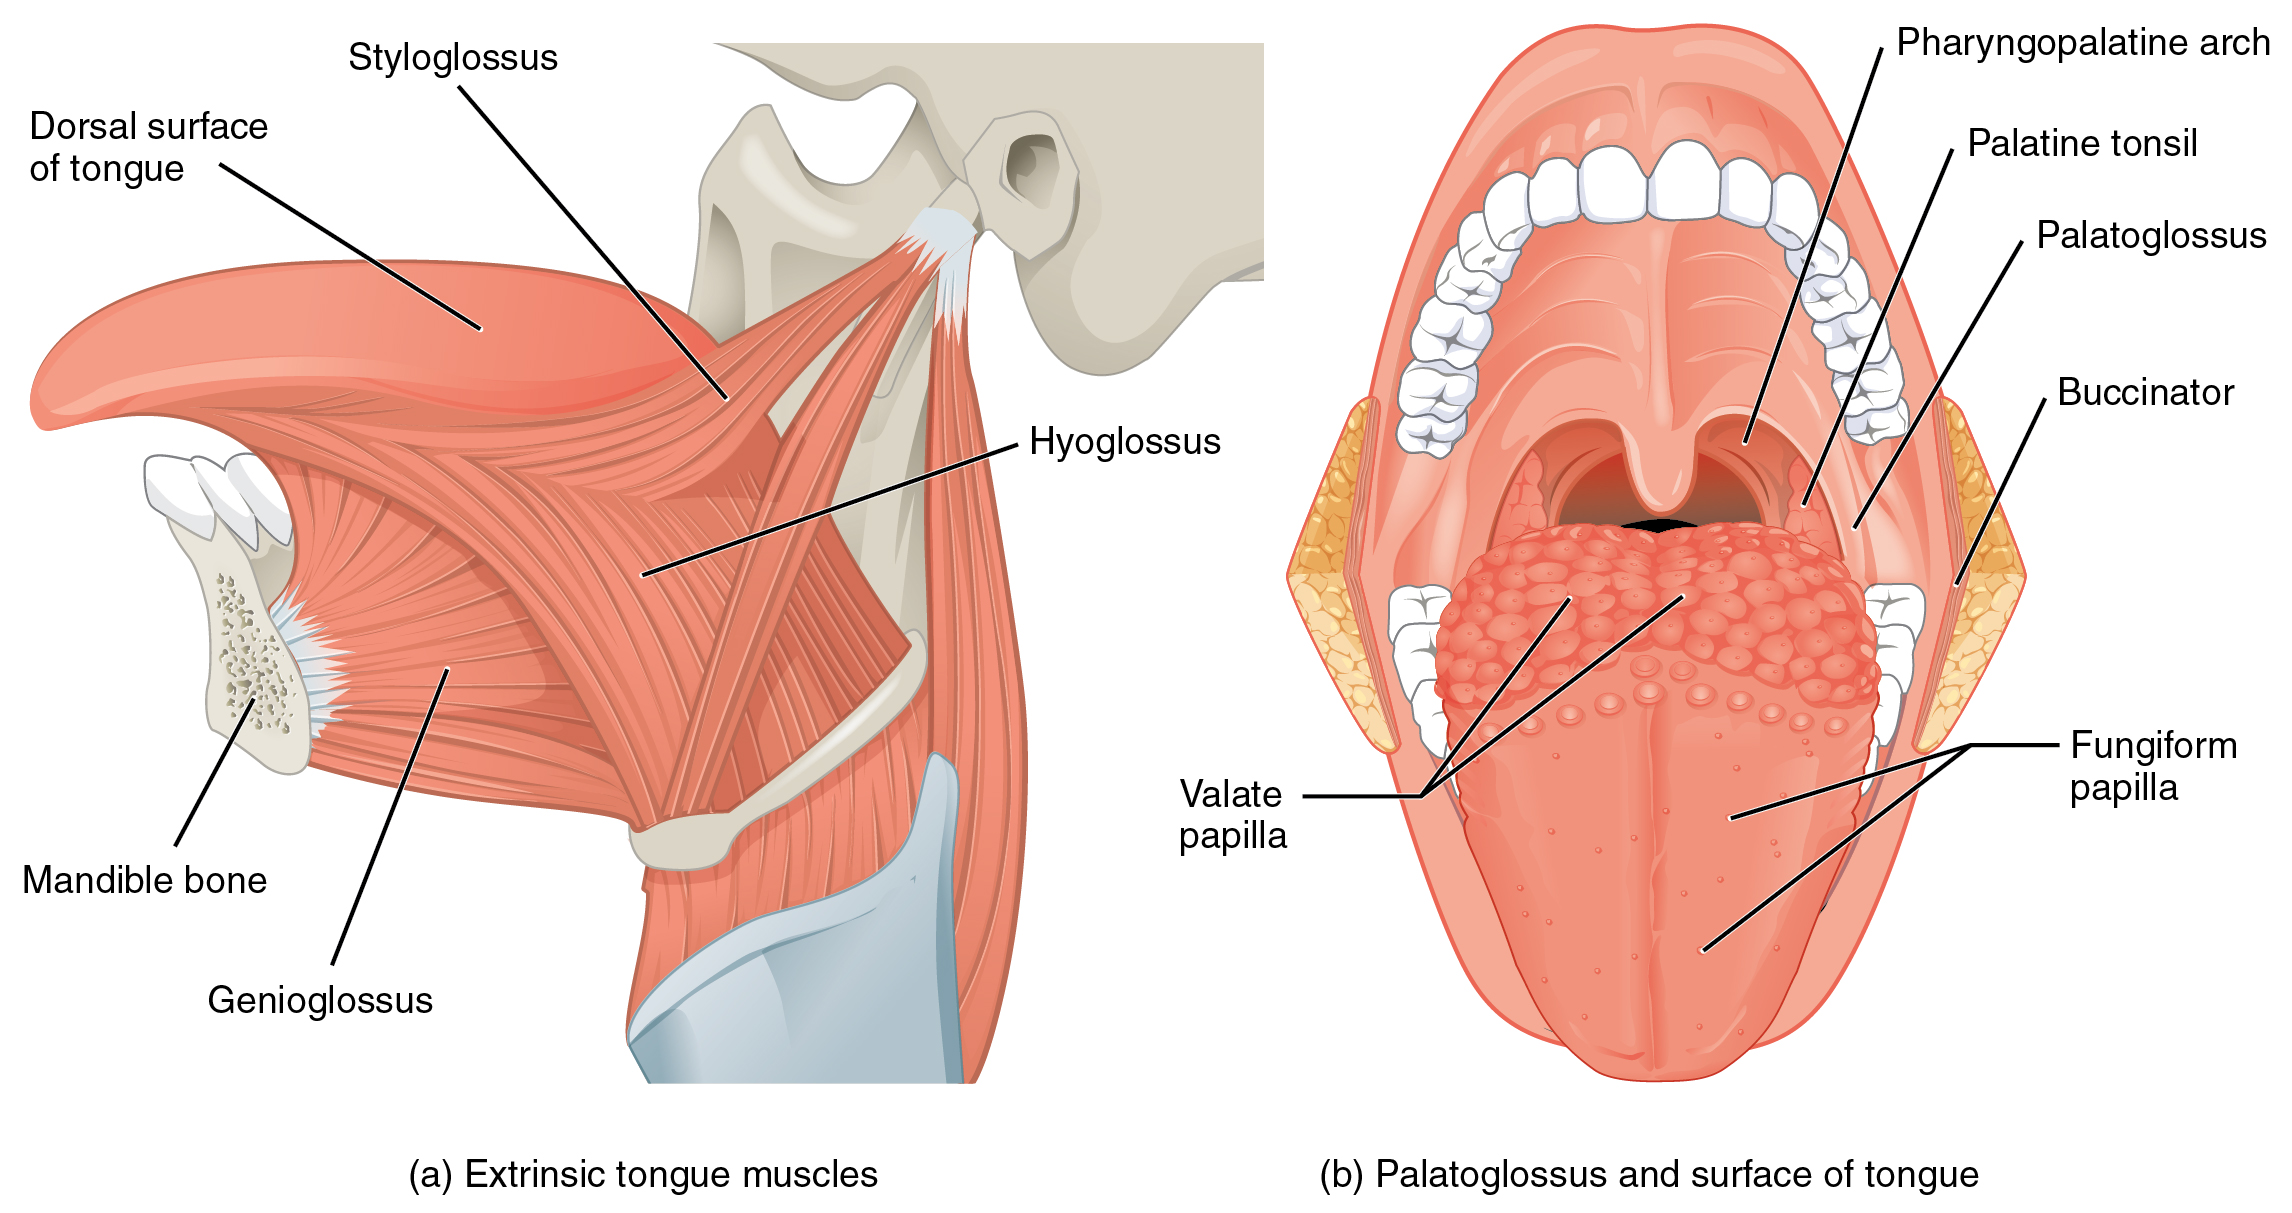 presentation name on emaze, Cephalic Vein